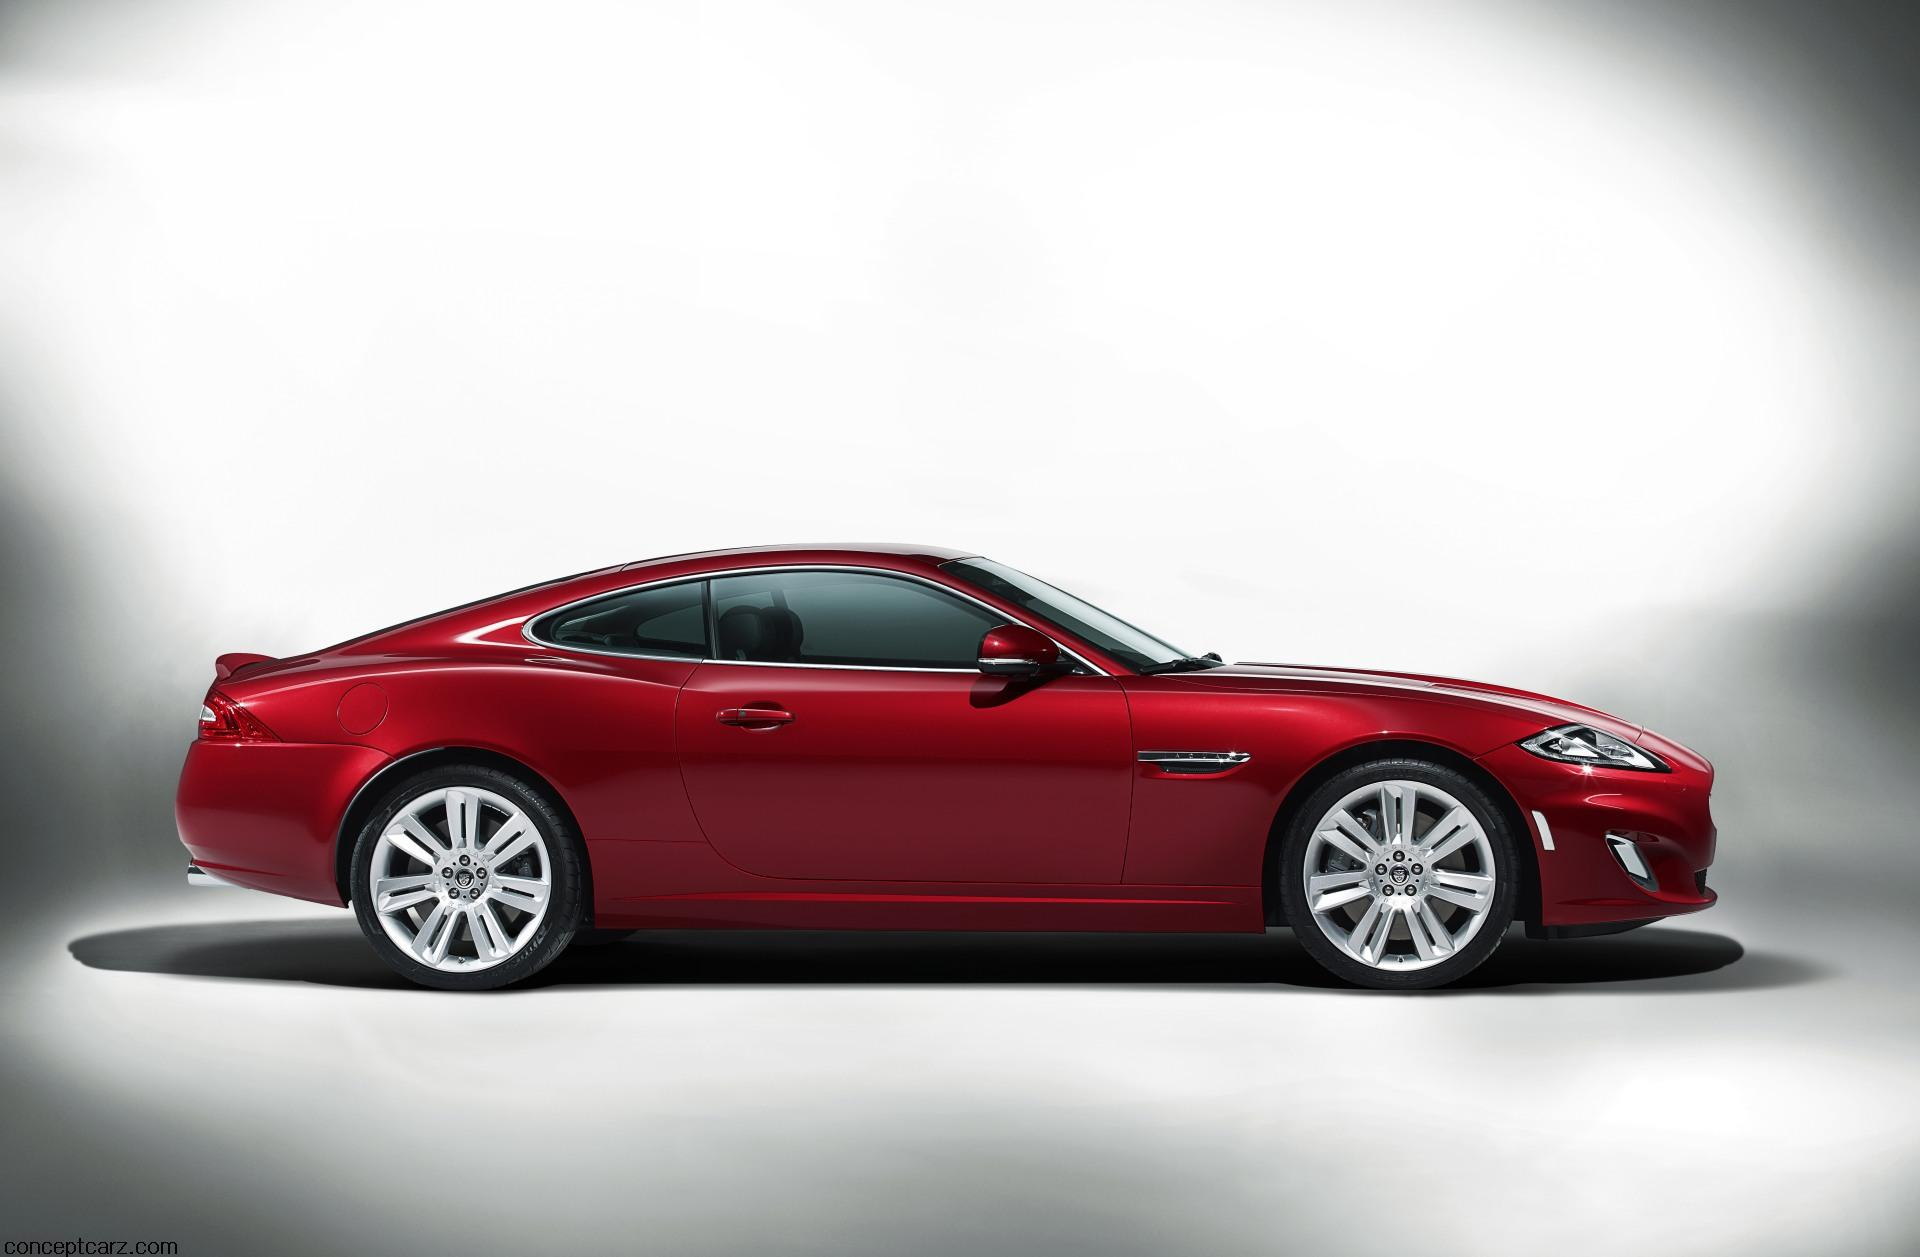 2012 jaguar xkr. Black Bedroom Furniture Sets. Home Design Ideas